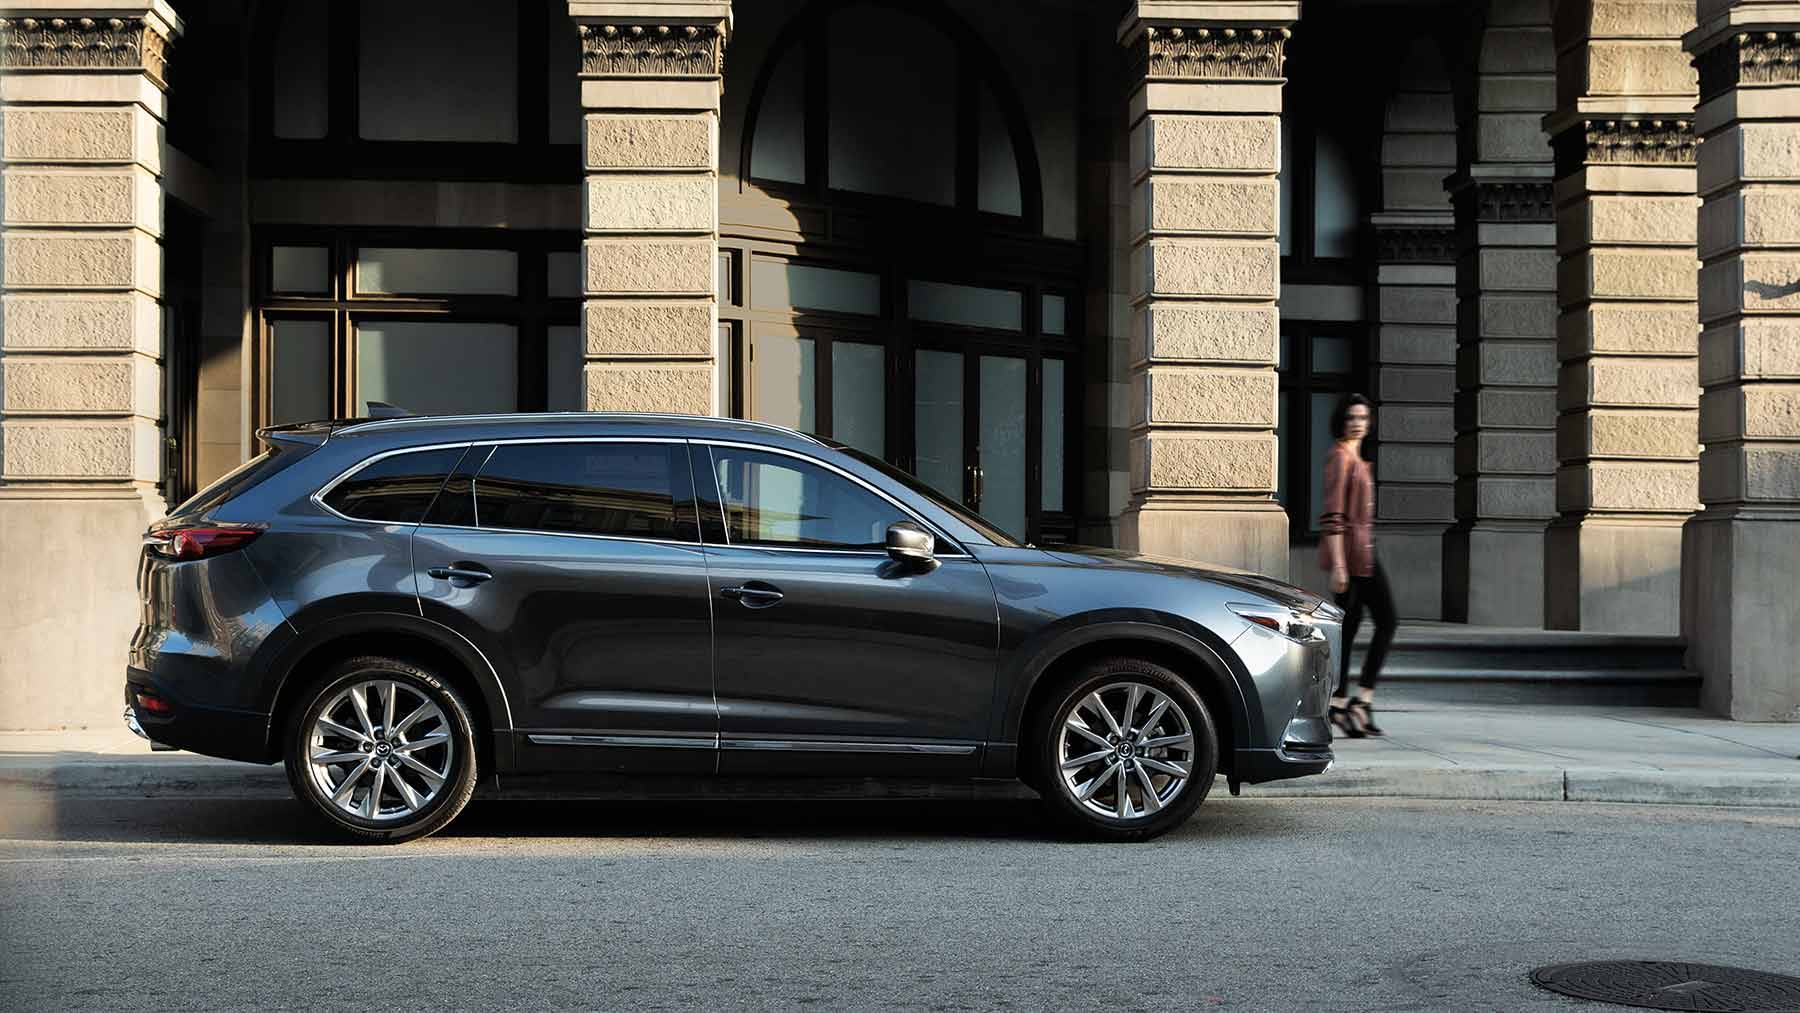 2019 Mazda CX-9 Financing near Garden City, NY